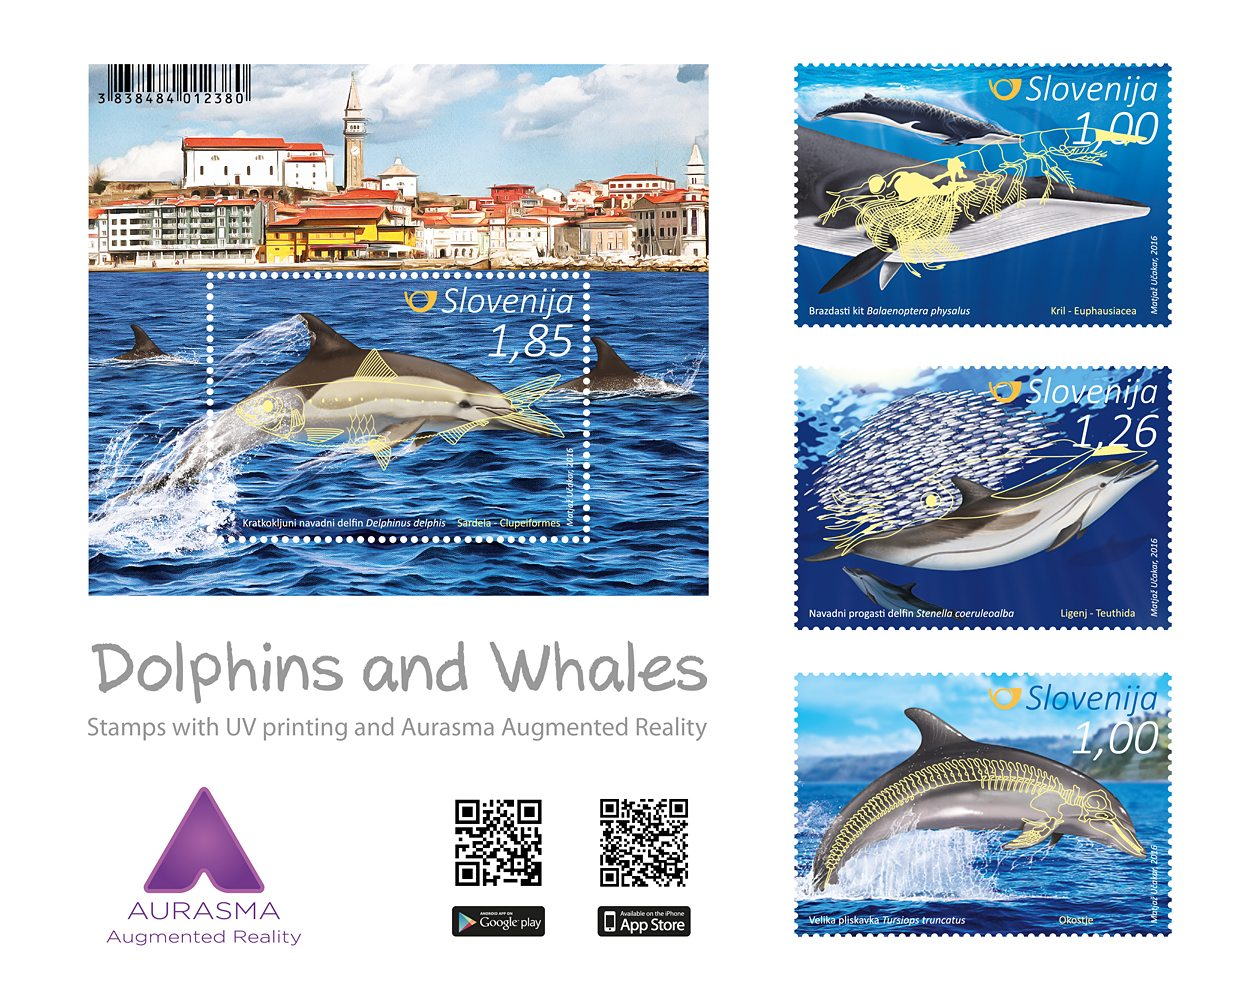 Slovenian Post: Dolphins and Whales – Additional image visible in Ultraviolet Light